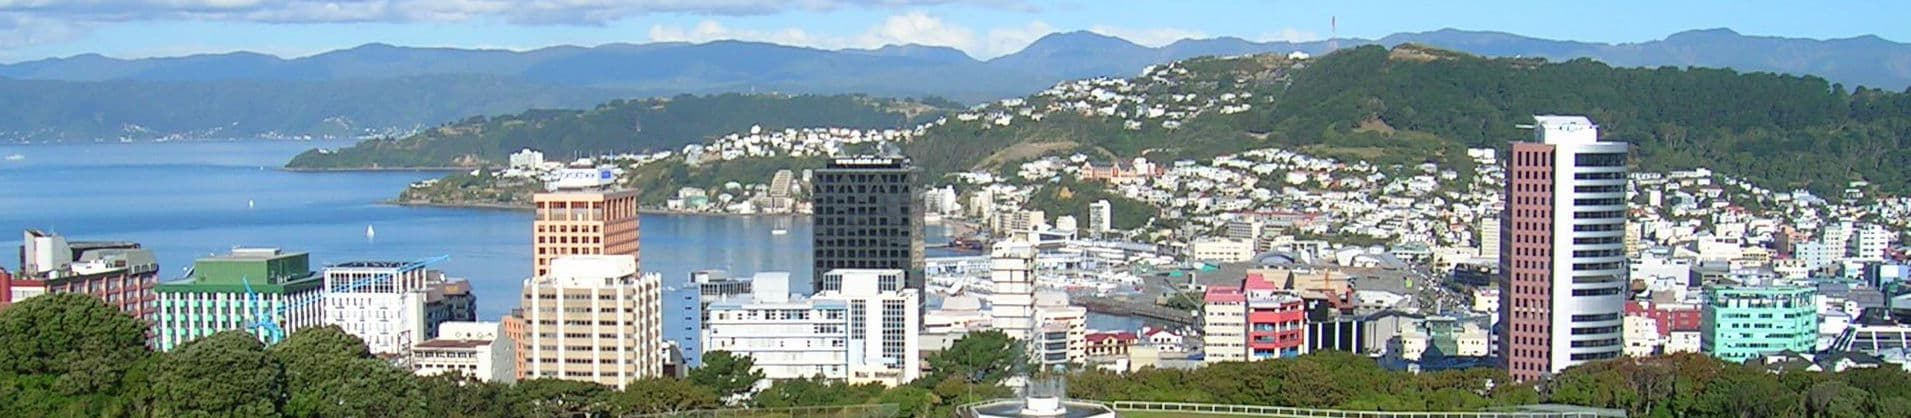 Pictured: skyline of Wellington